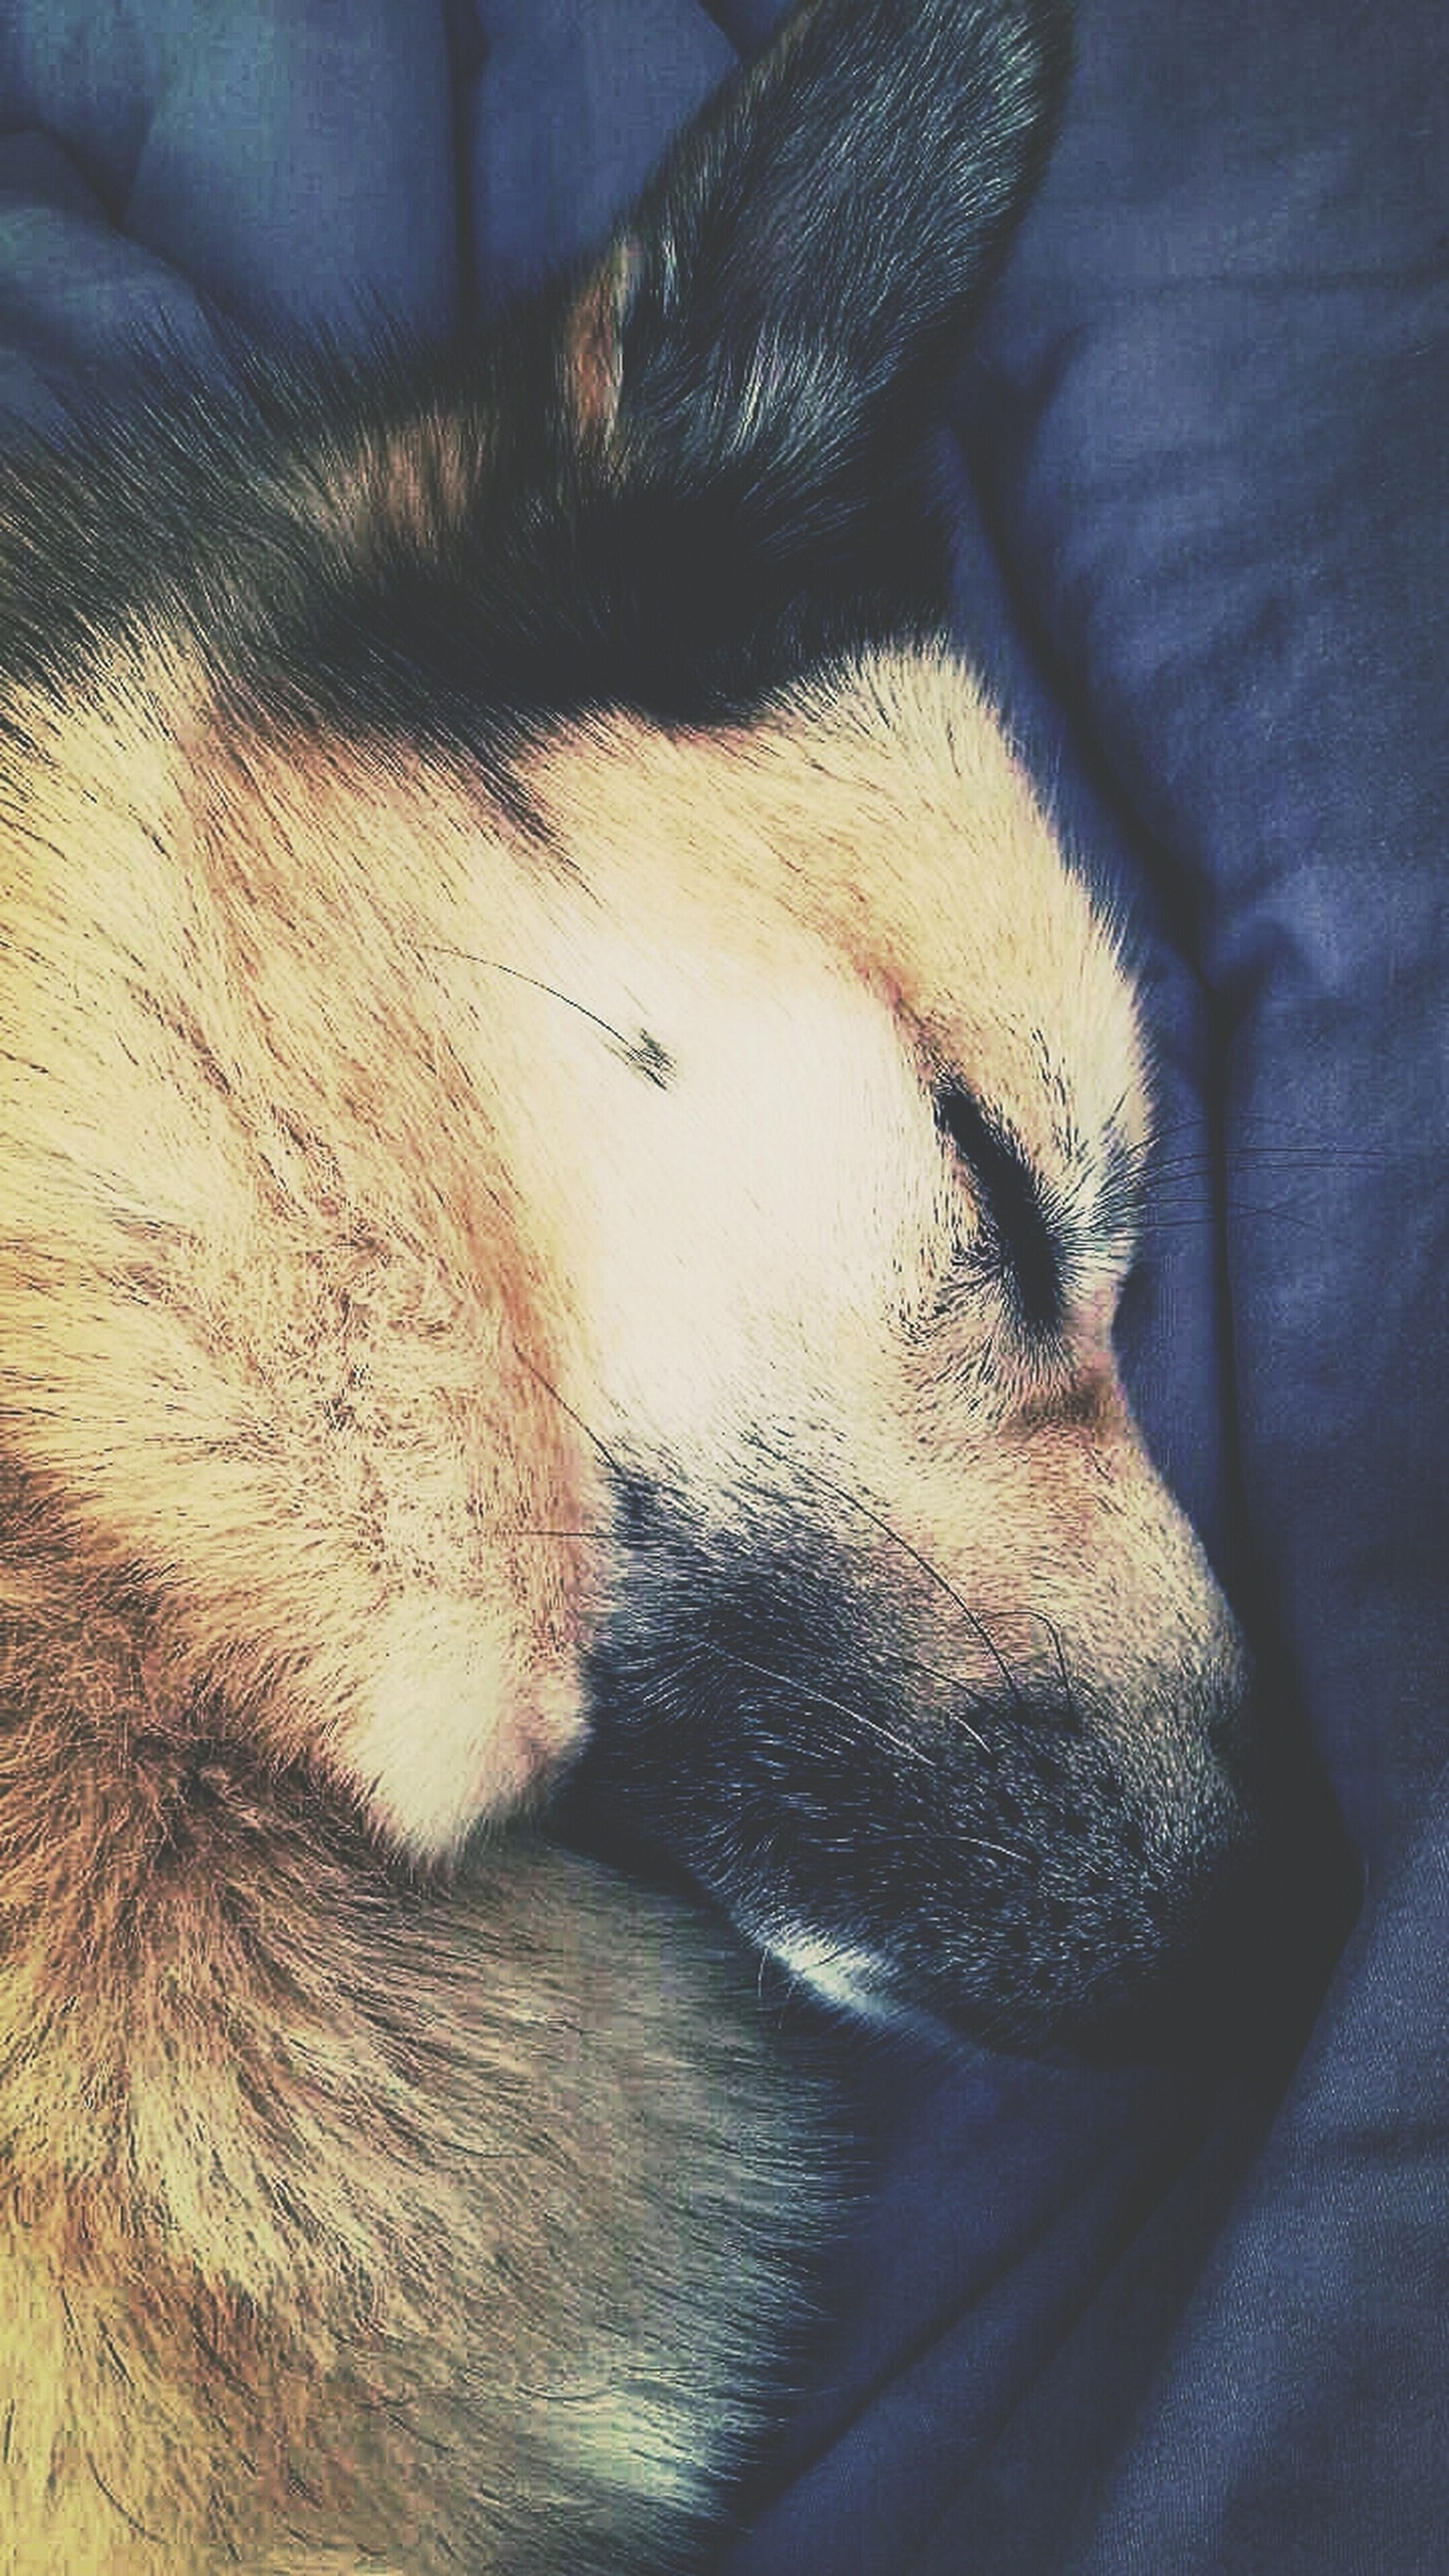 domestic animals, mammal, one animal, animal themes, indoors, pets, part of, close-up, dog, relaxation, sleeping, animal body part, person, cropped, unrecognizable person, high angle view, low section